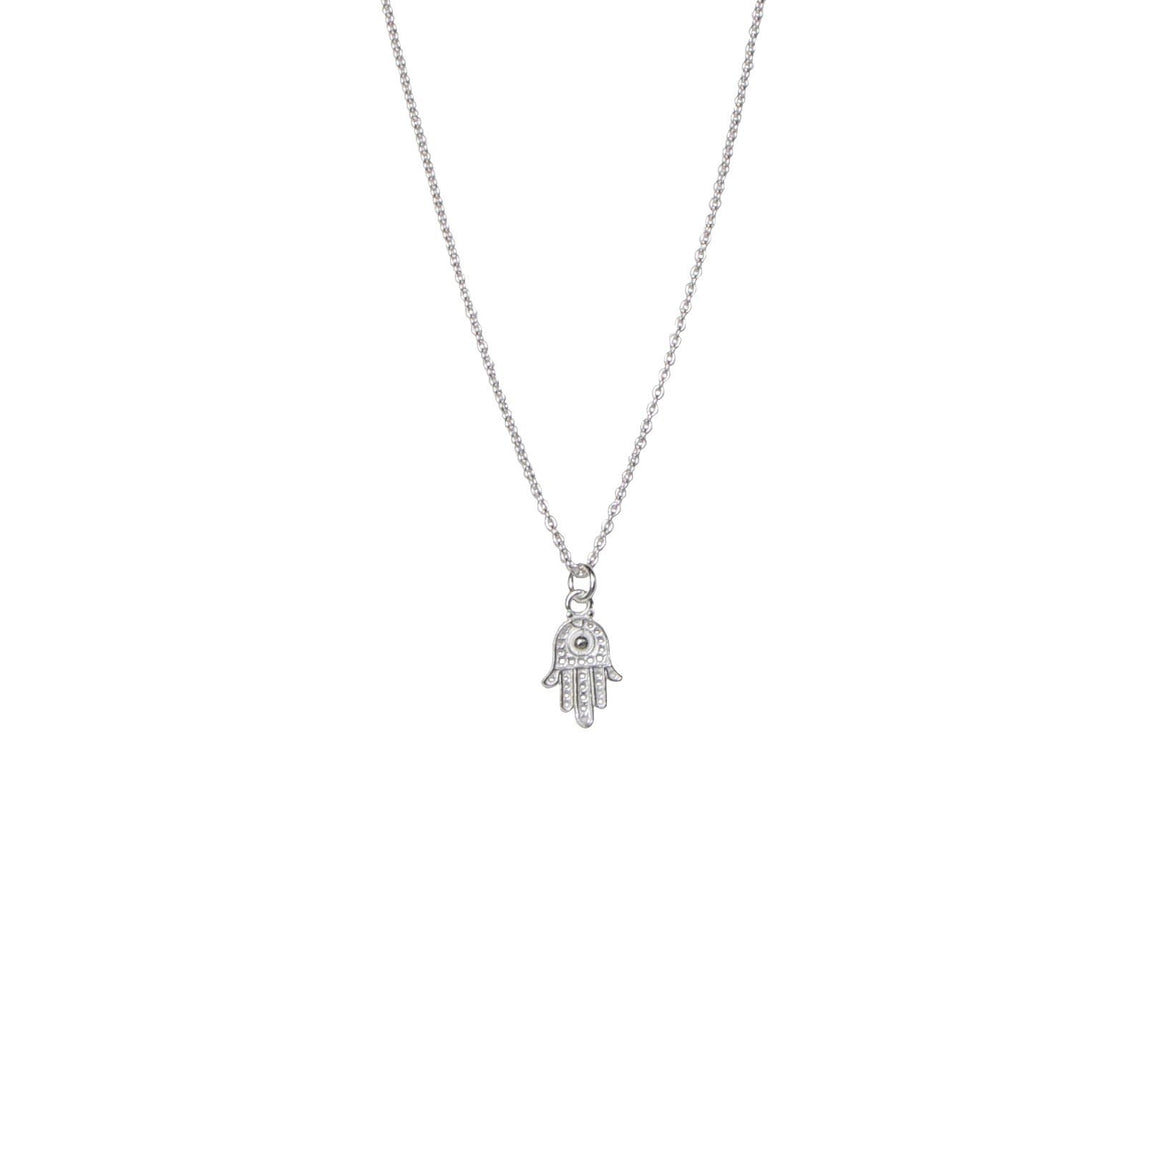 Silver Hamsa hand necklace for protection by Karma Links Jewellery